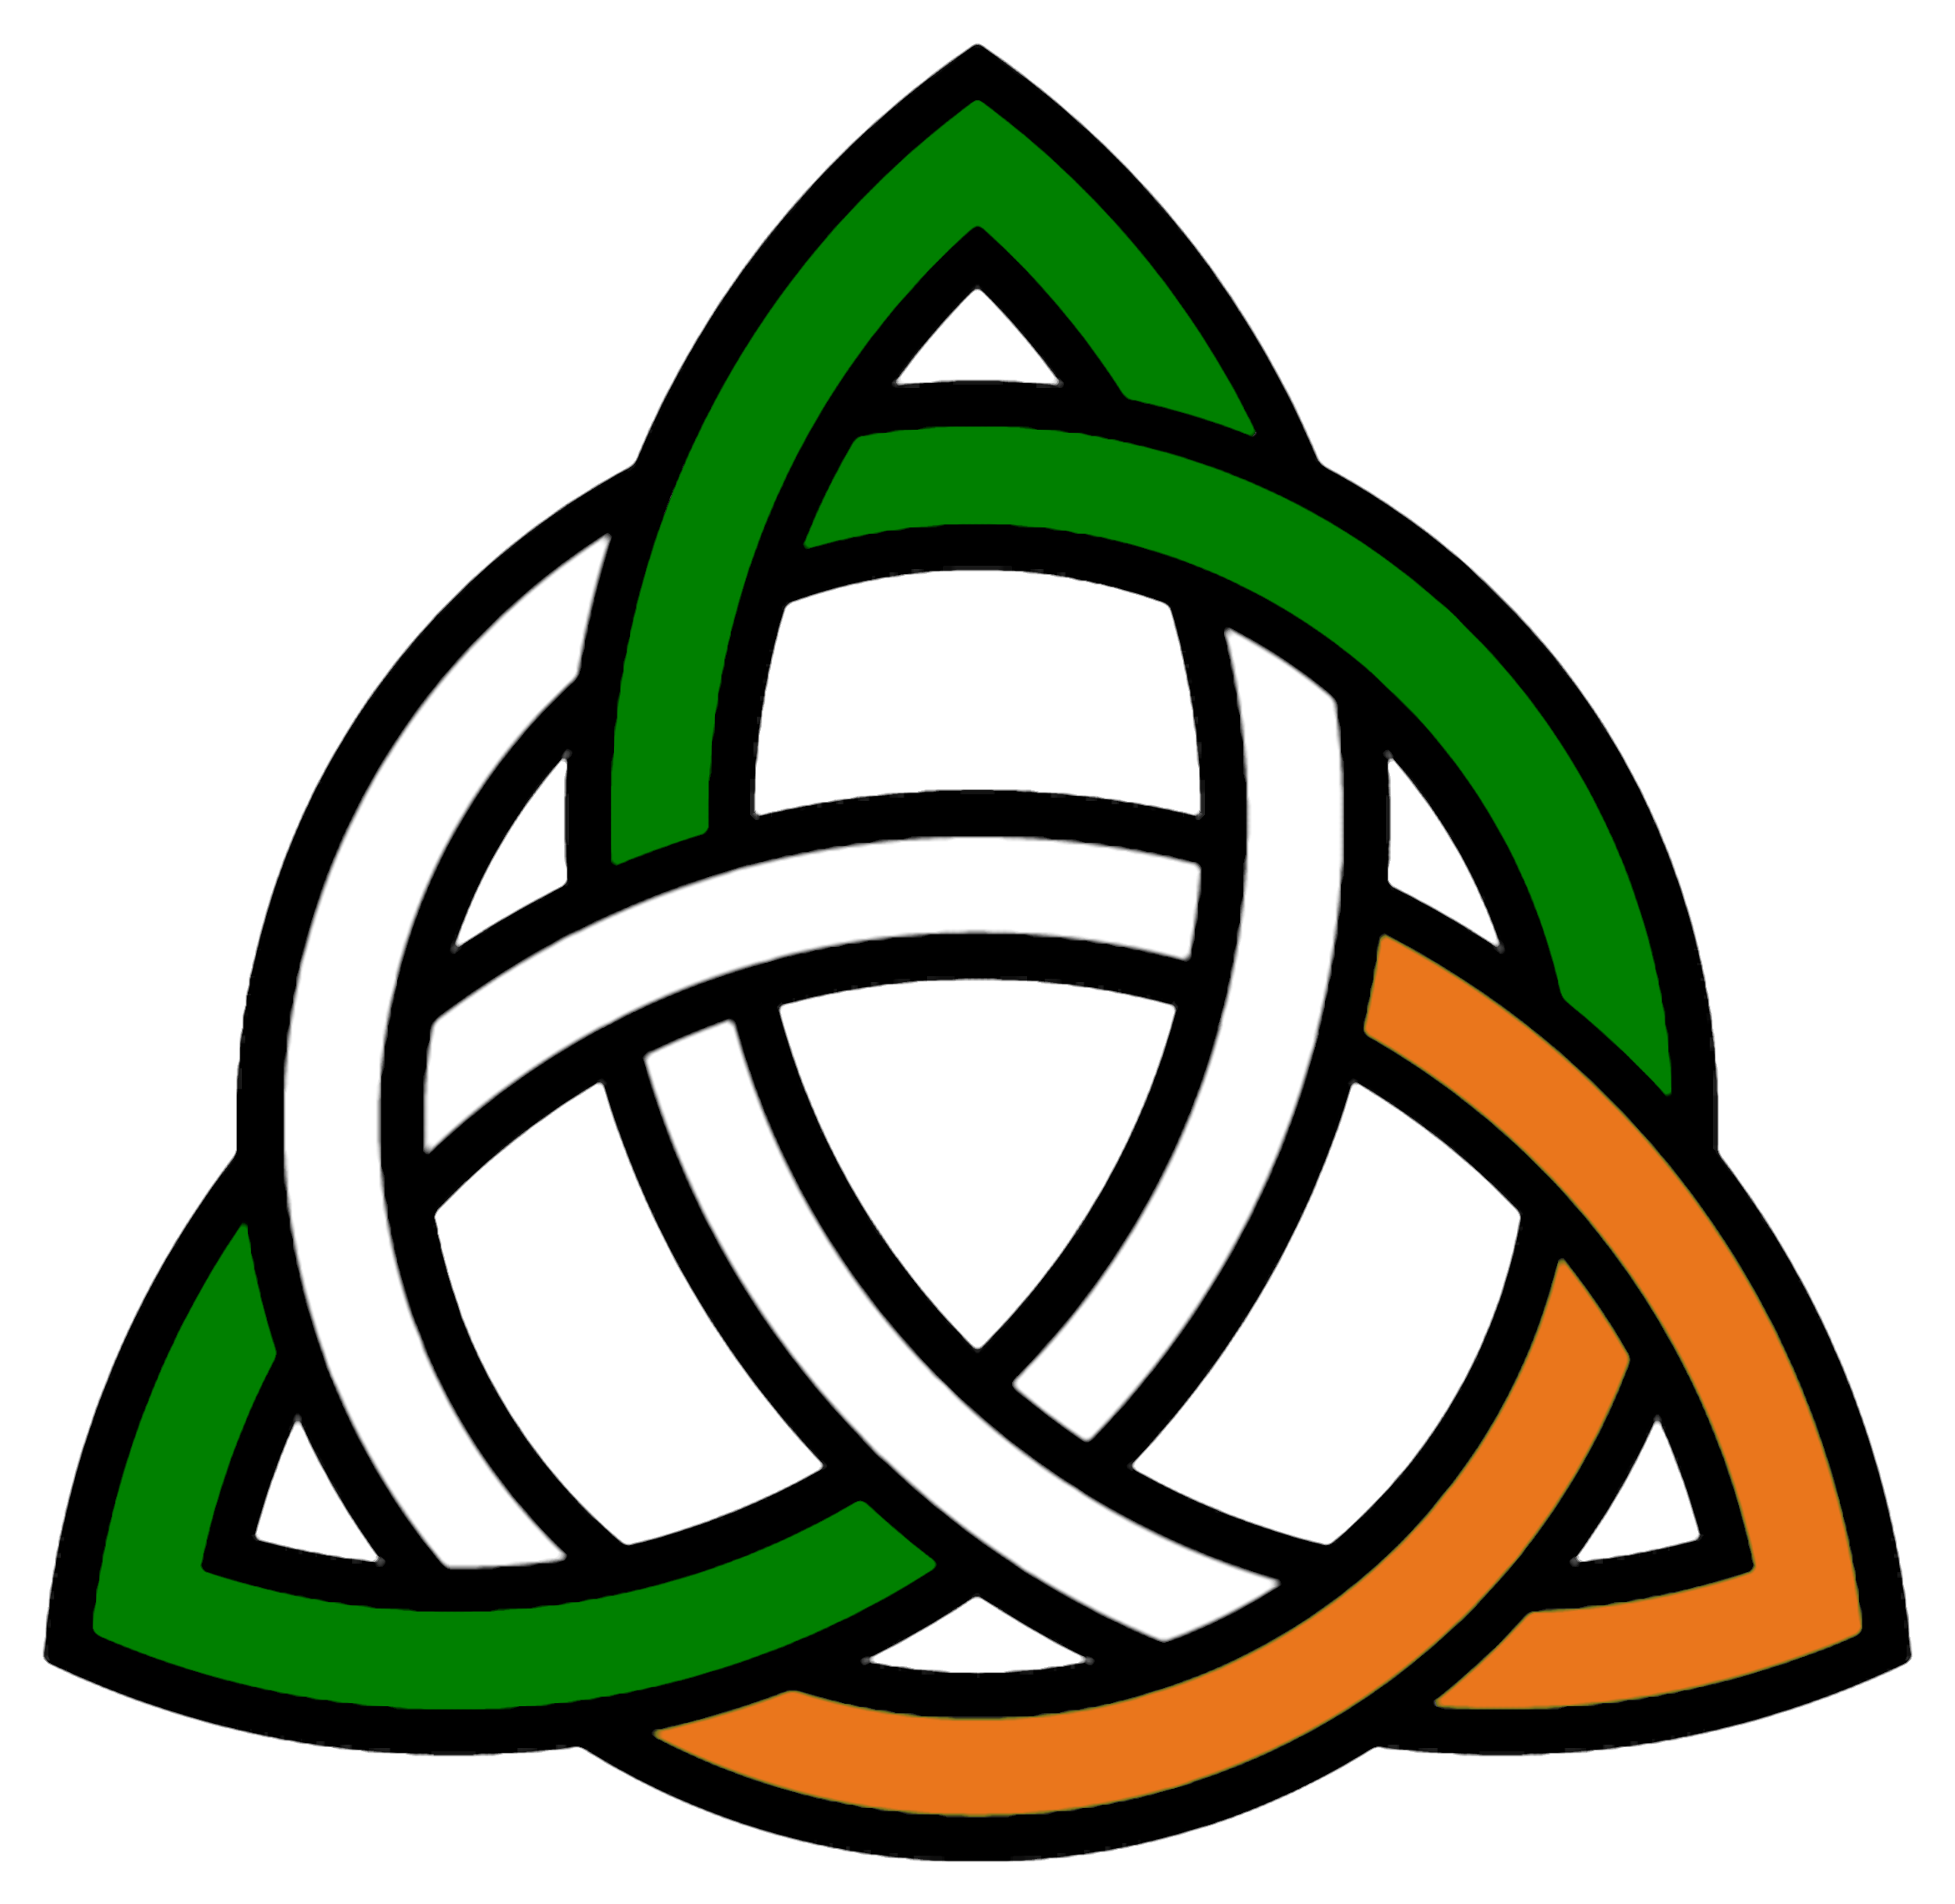 Infinity clipart infinity knot. Image result for irish